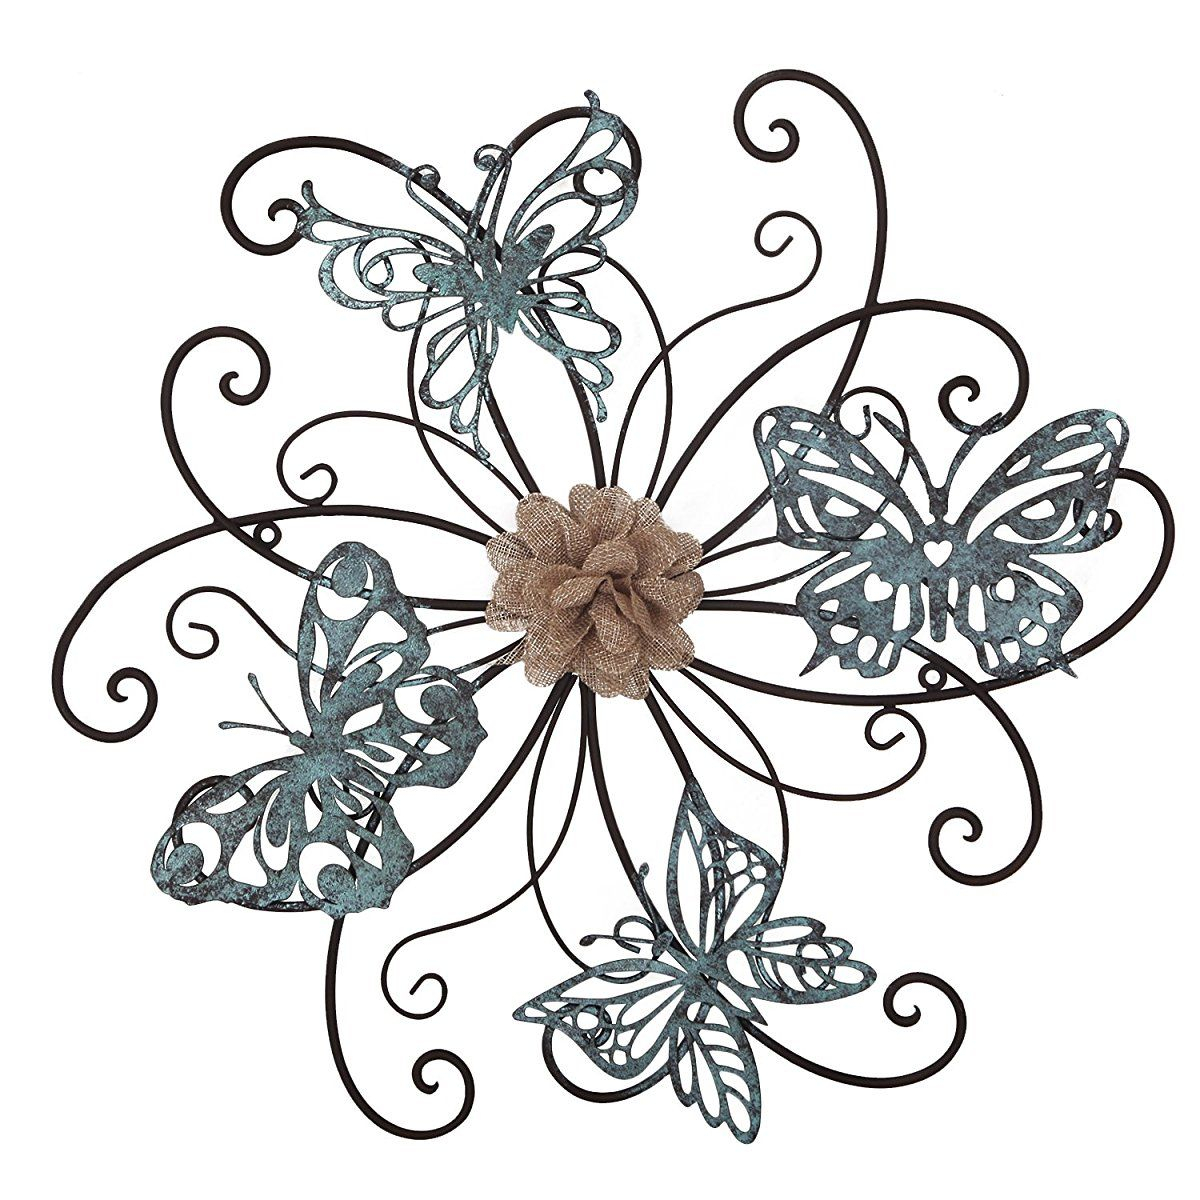 Most Recently Released Homes Art Flower And Butterfly Urban Design Metal Wall Decor For Inside Flower And Butterfly Urban Design Metal Wall Decor (View 3 of 20)